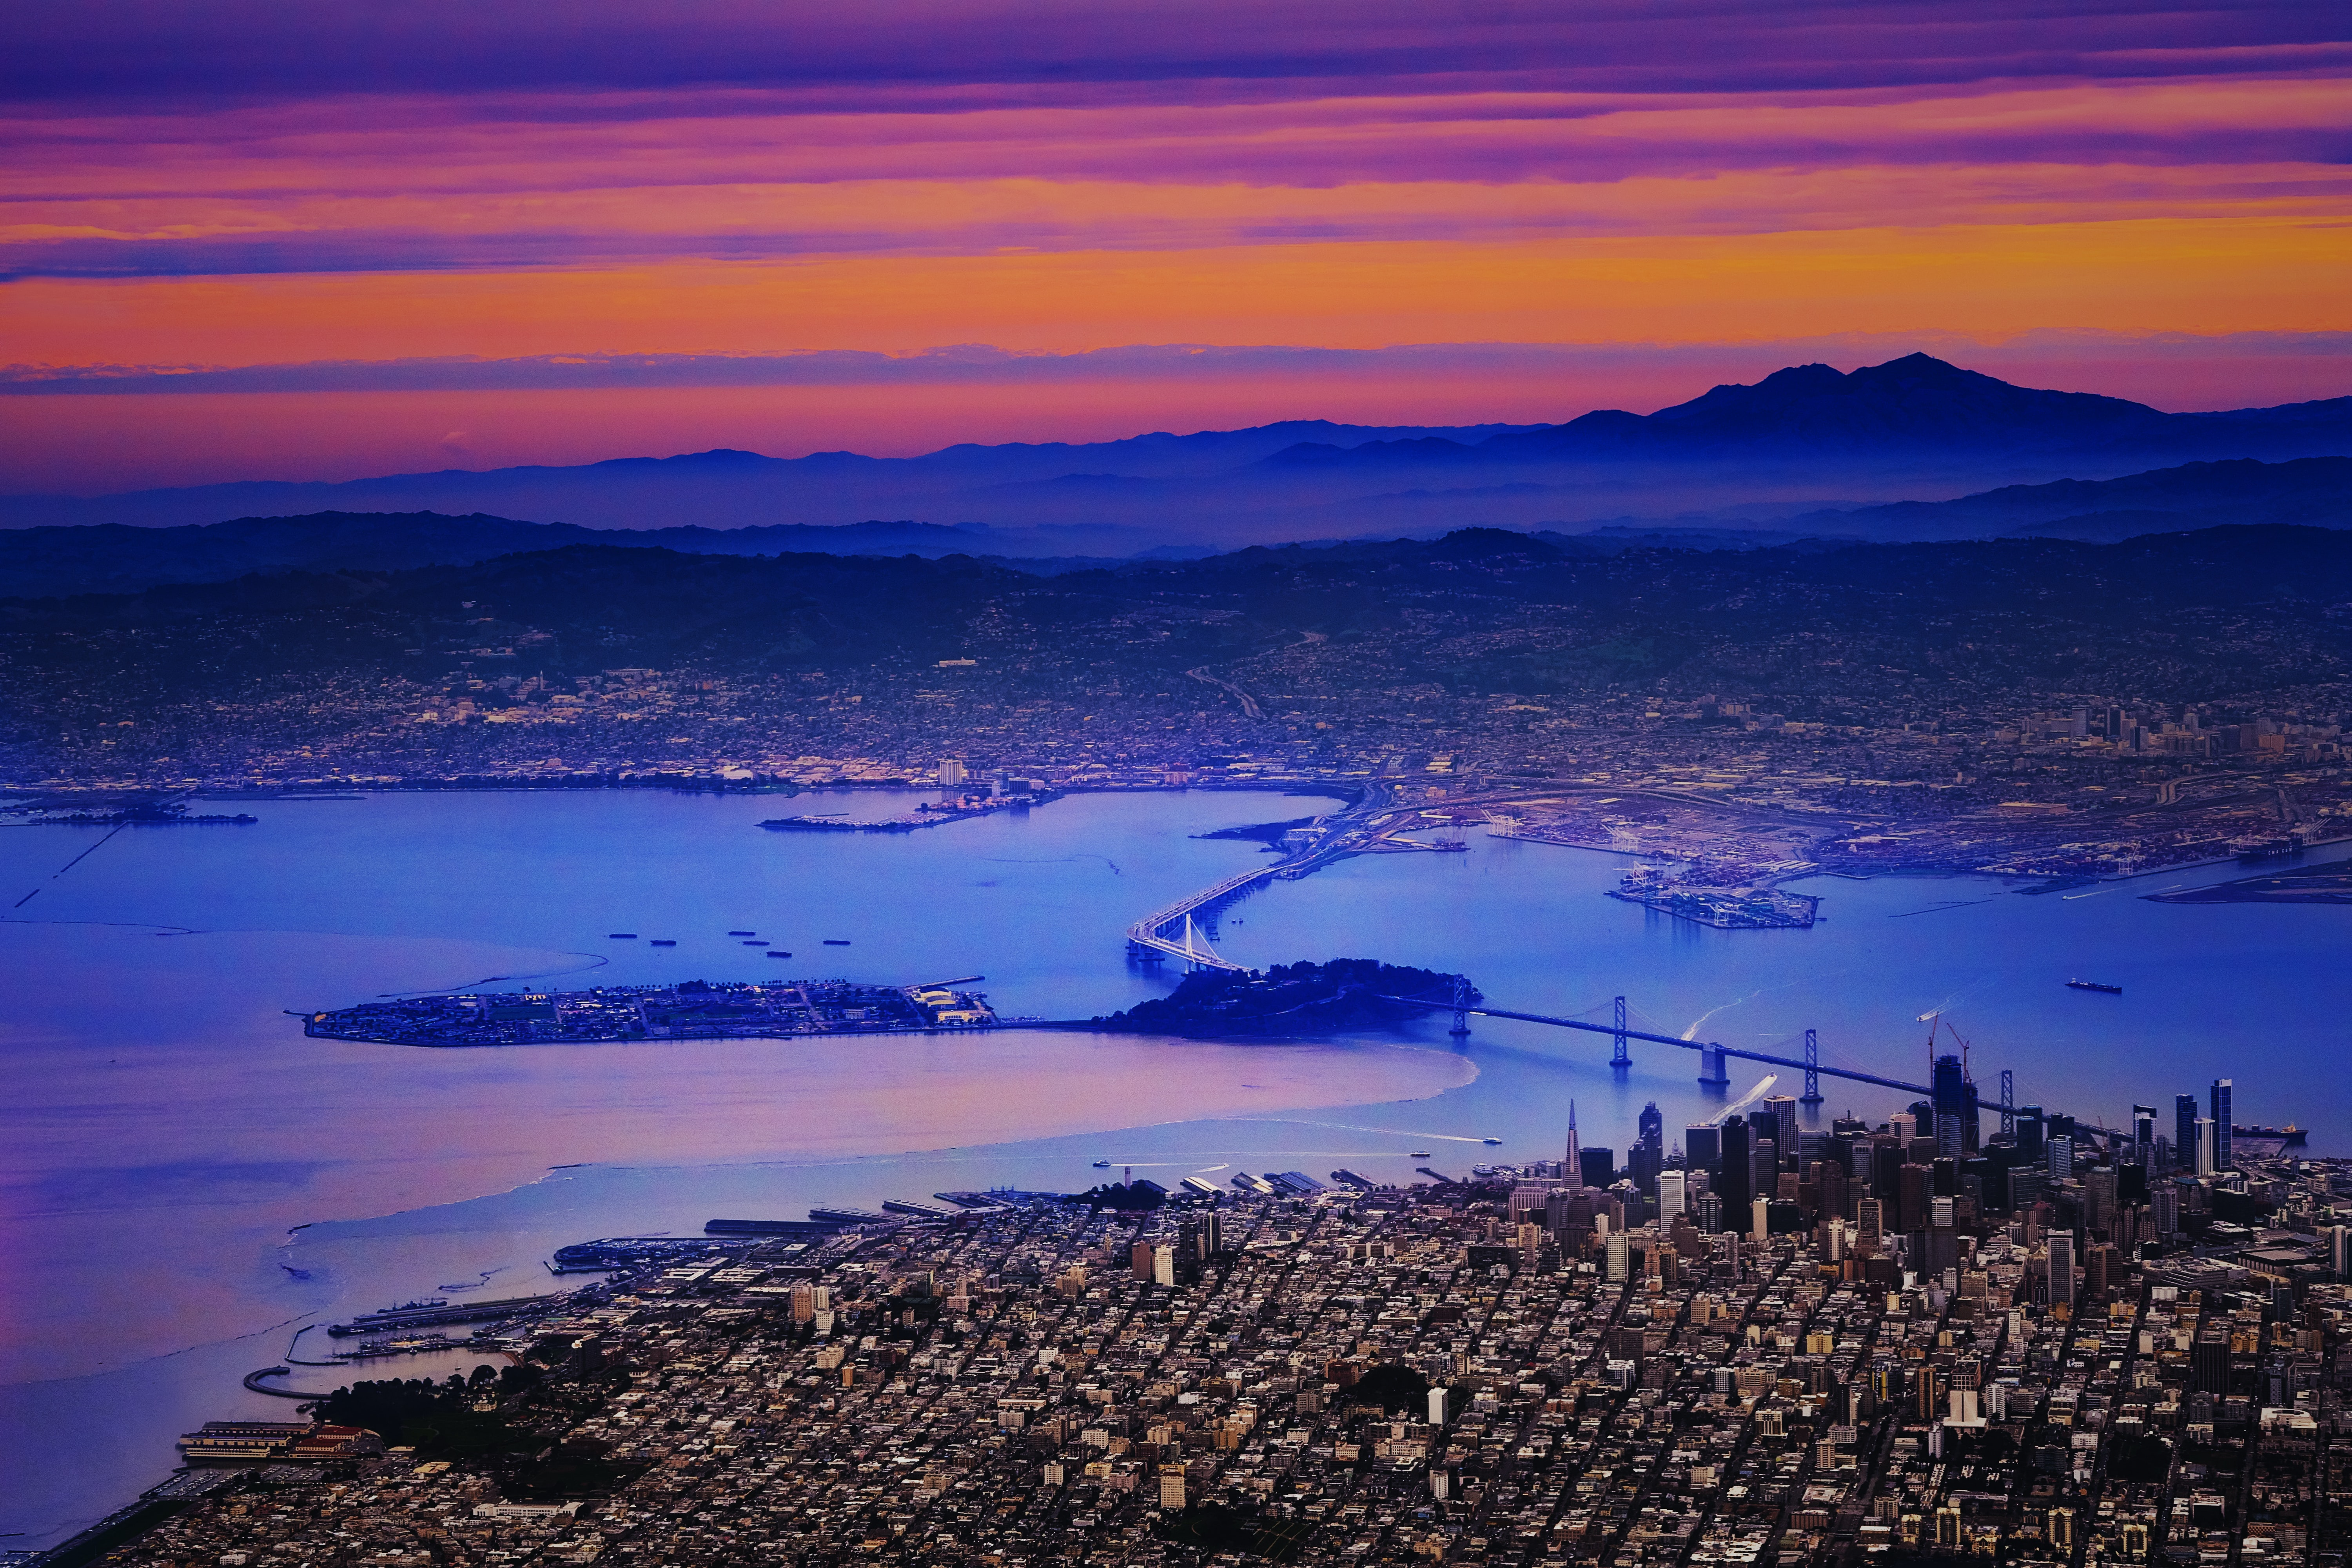 Sunset over San Francisco with a bridge in the foreground spreading over the water